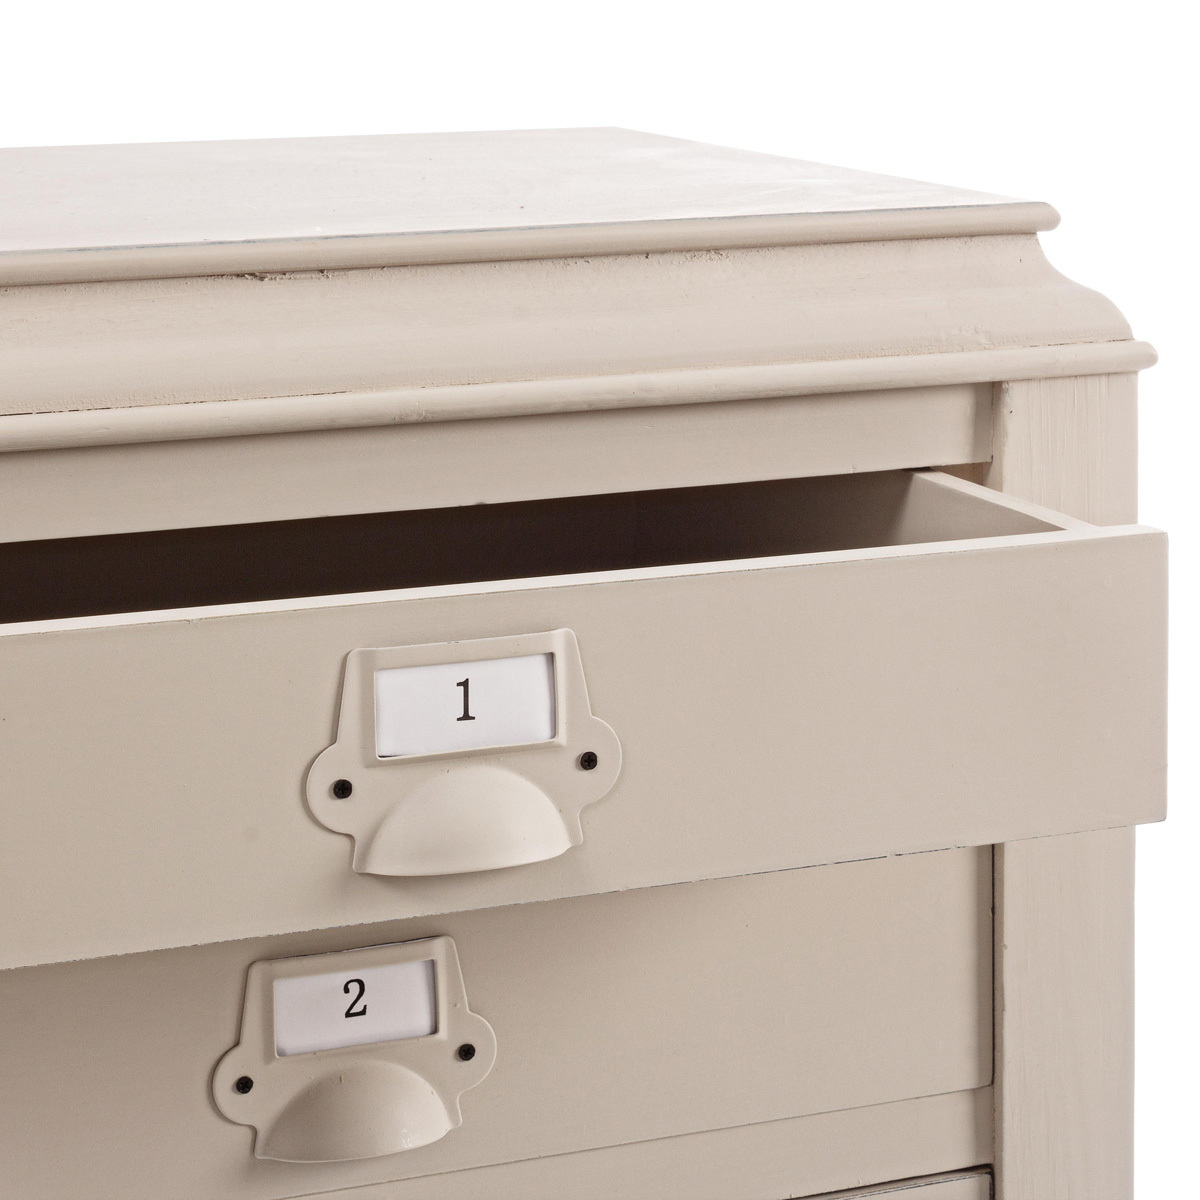 Photos 5: Bizzotto Door lamp in wood l. 49 x 36 with 3 drawers 0745266